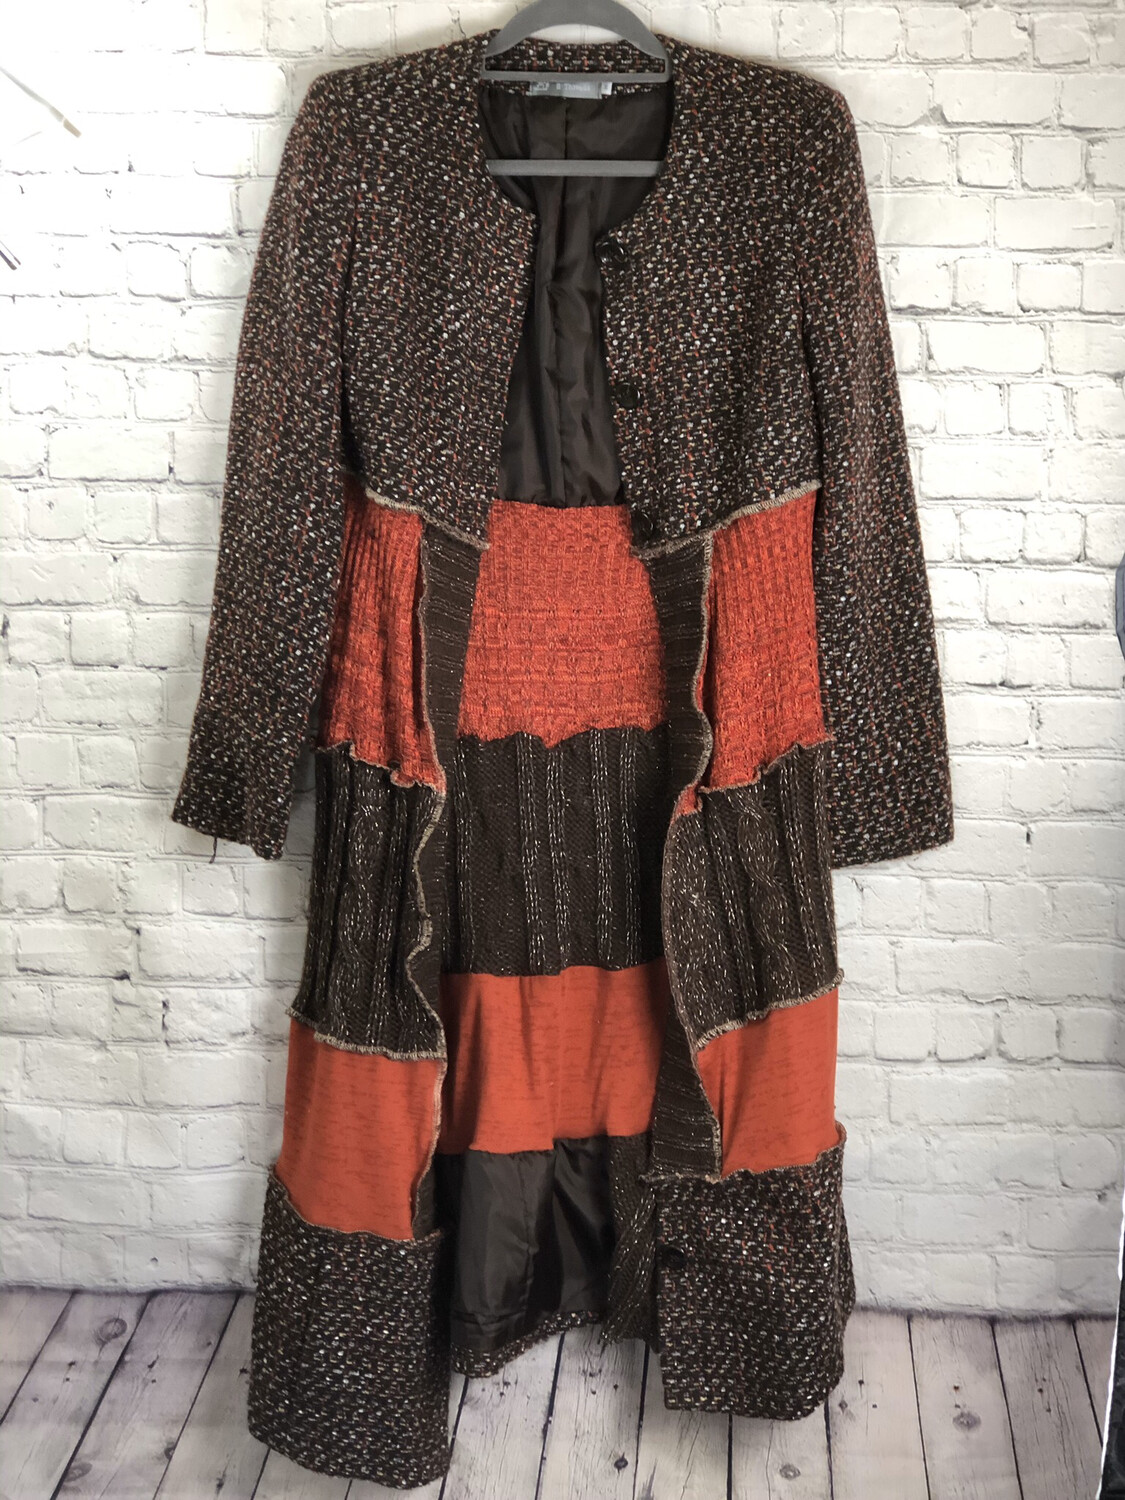 Jayer Aka Jacket With Layers In Brown, Orange